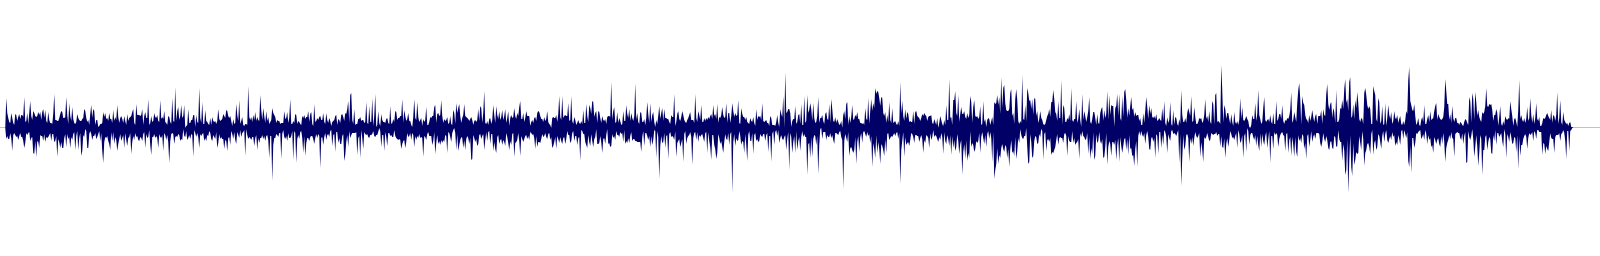 waveform of track #116332